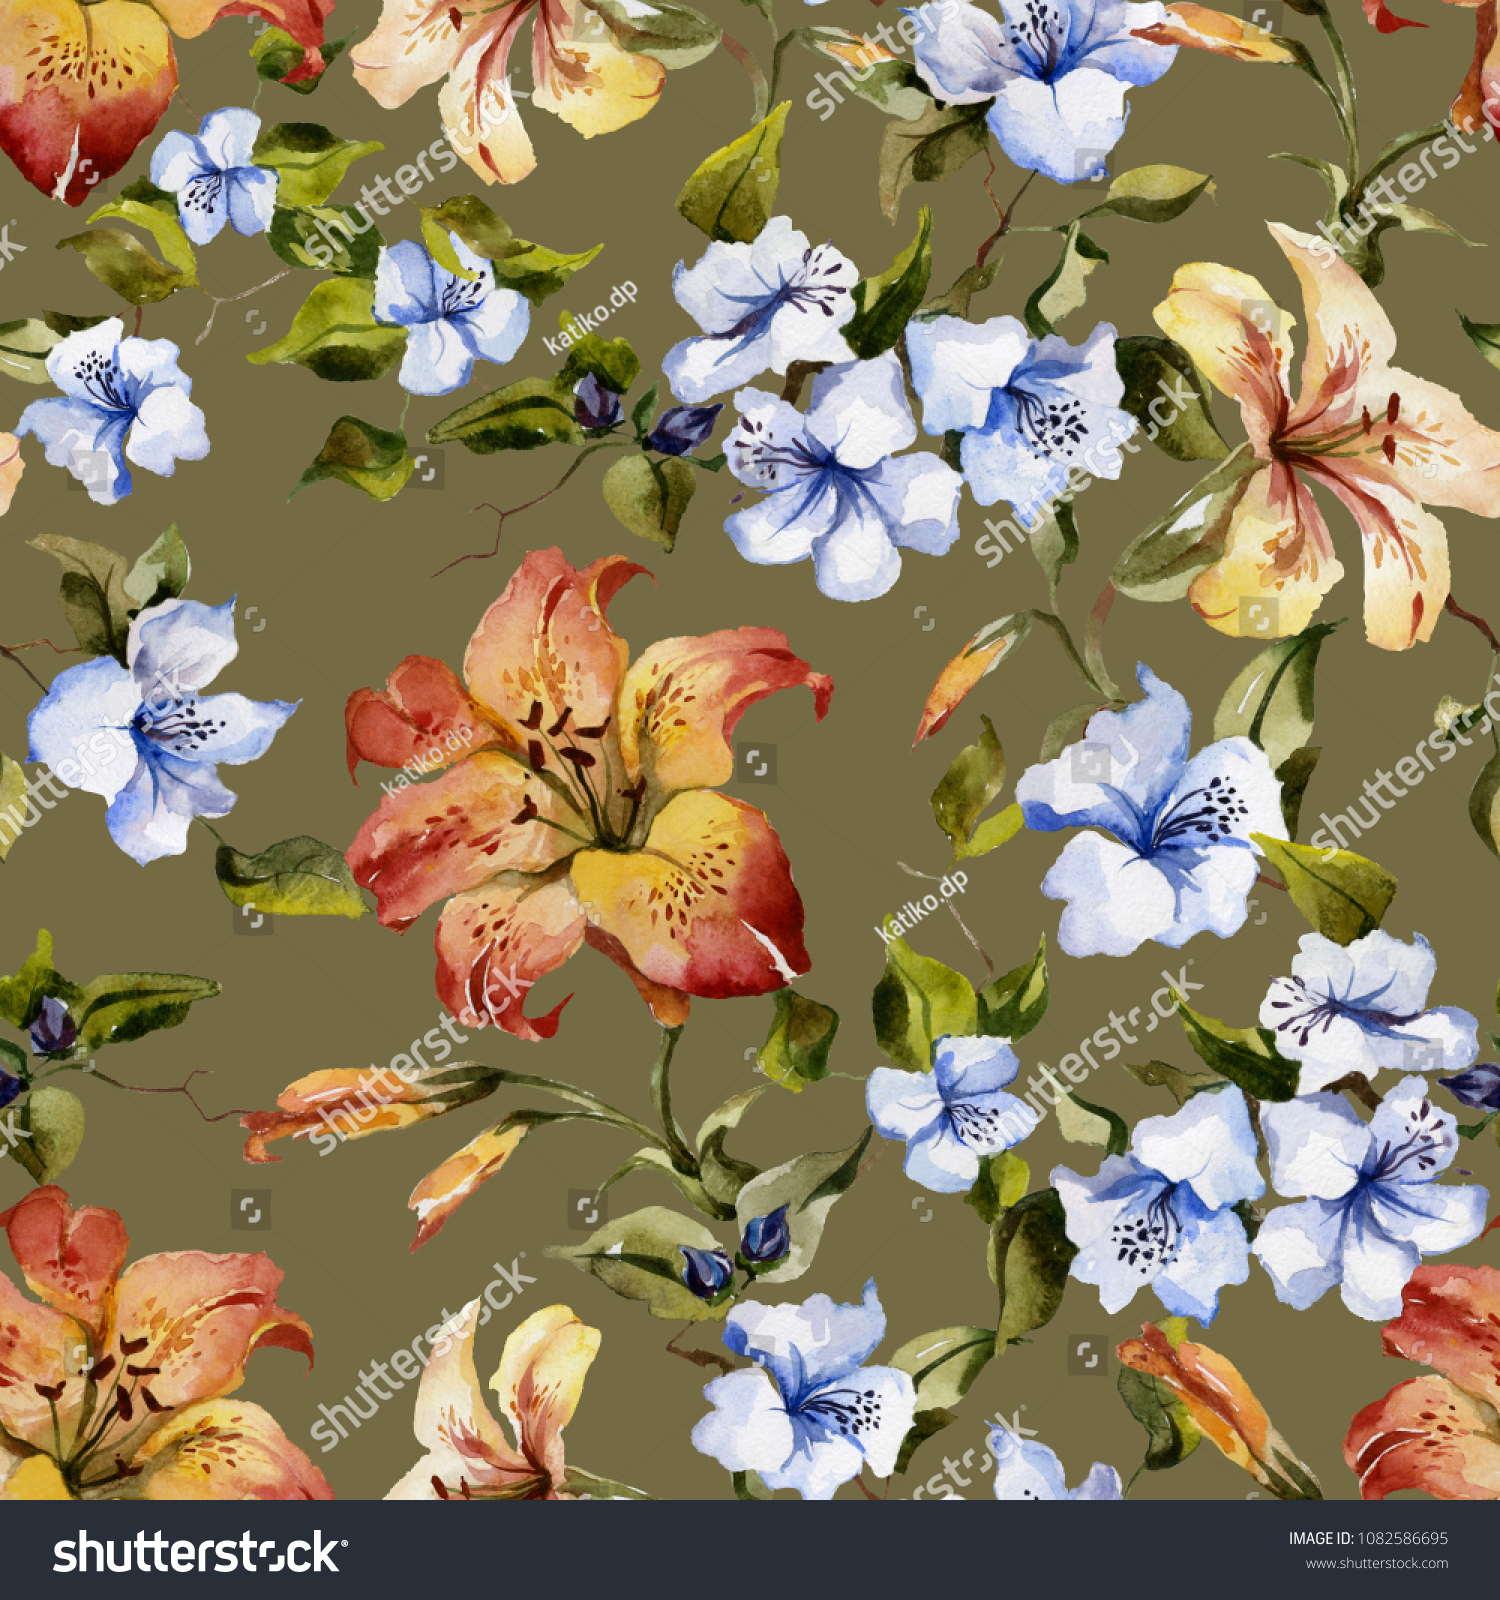 Beautiful tiger lilies small blue flowers stock illustration beautiful tiger lilies and small blue flowers on twigs against green background seamless floral pattern izmirmasajfo